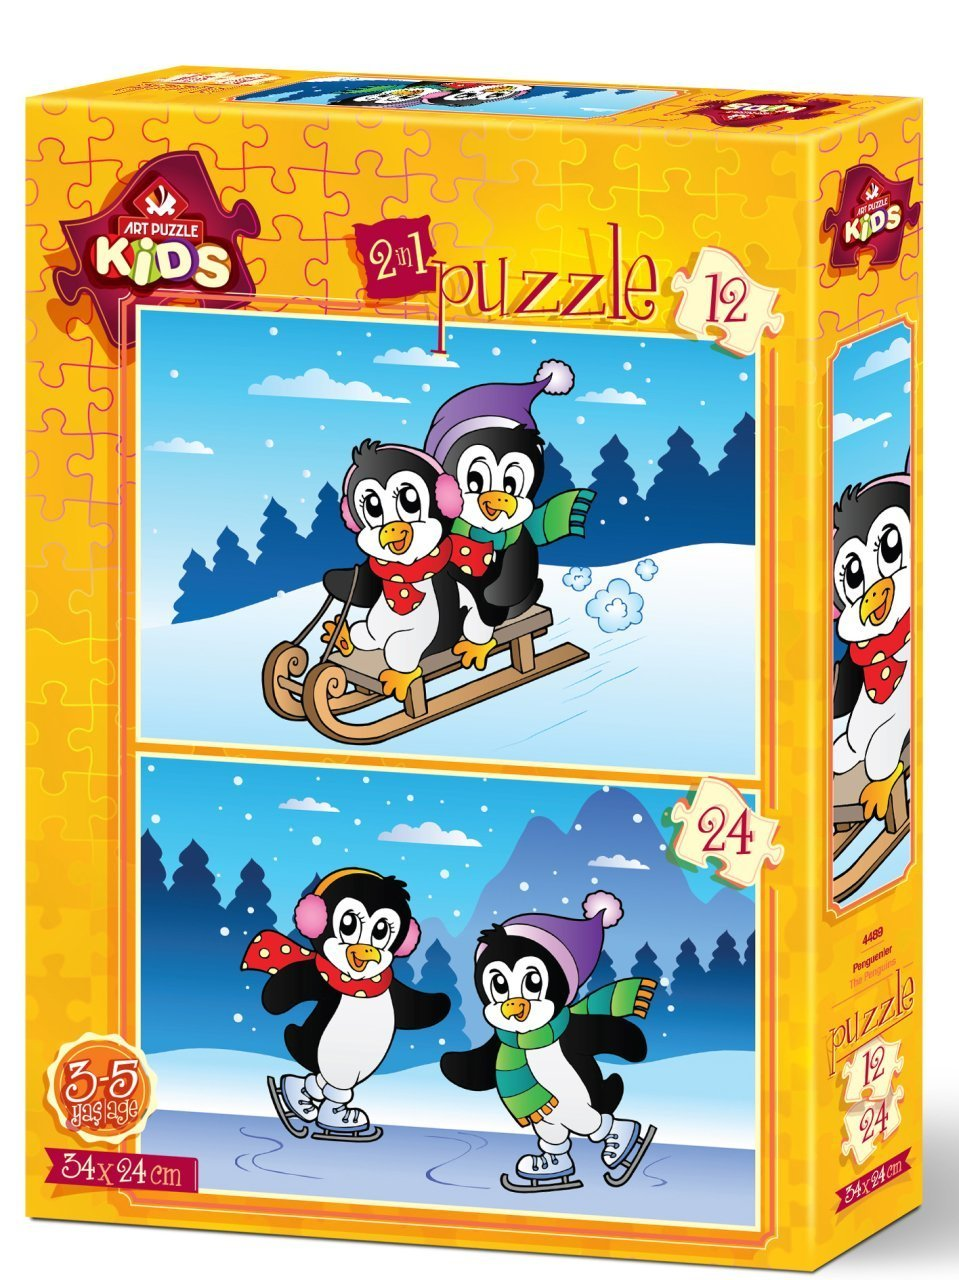 Art Puzzle 2 Puzzles - The Penguins 12 Teile Puzzle Art-Puzzle-4489